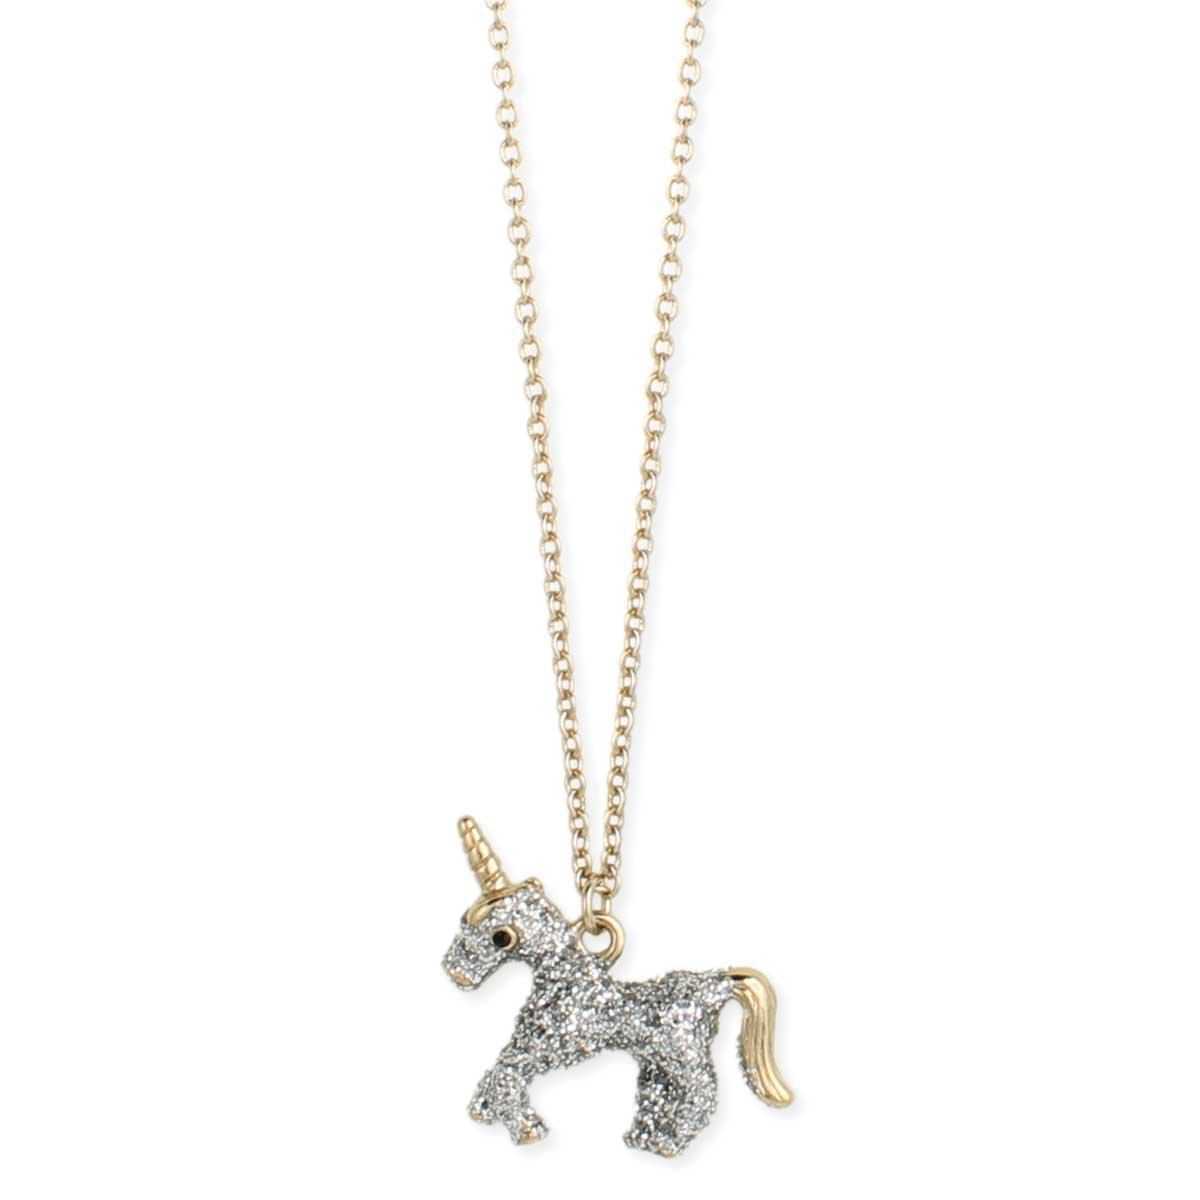 bf image is itm friends necklace best gifts pendant jewelry loading letter magic unicorn chain